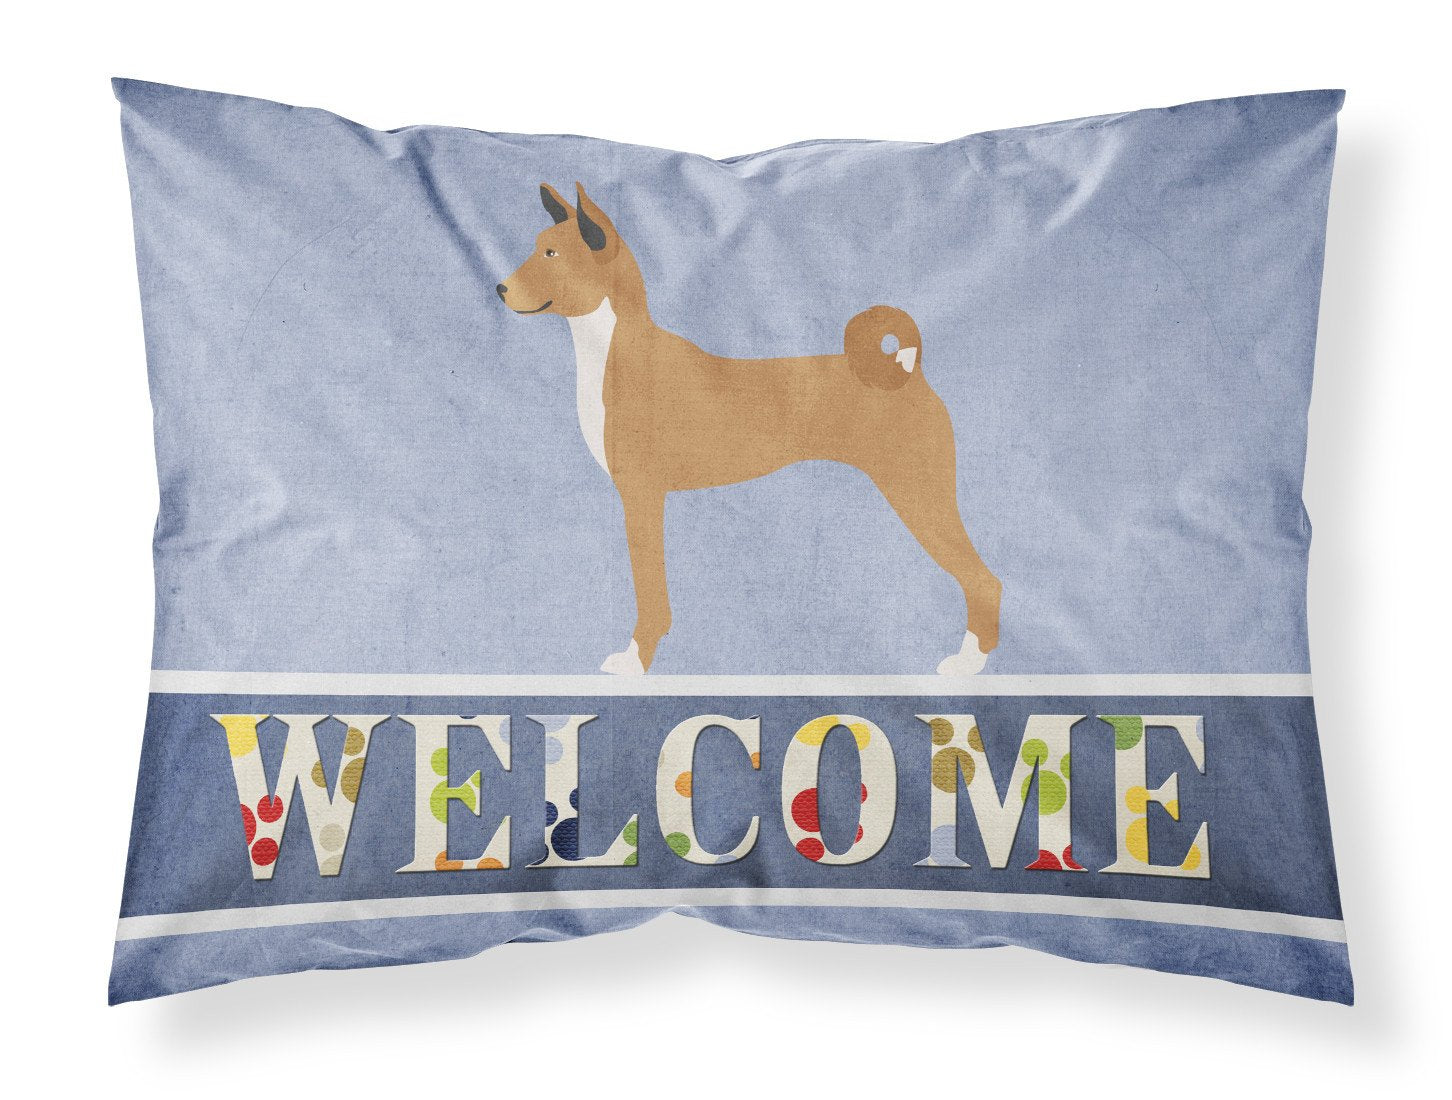 Telomian Welcome Fabric Standard Pillowcase BB8333PILLOWCASE by Caroline's Treasures